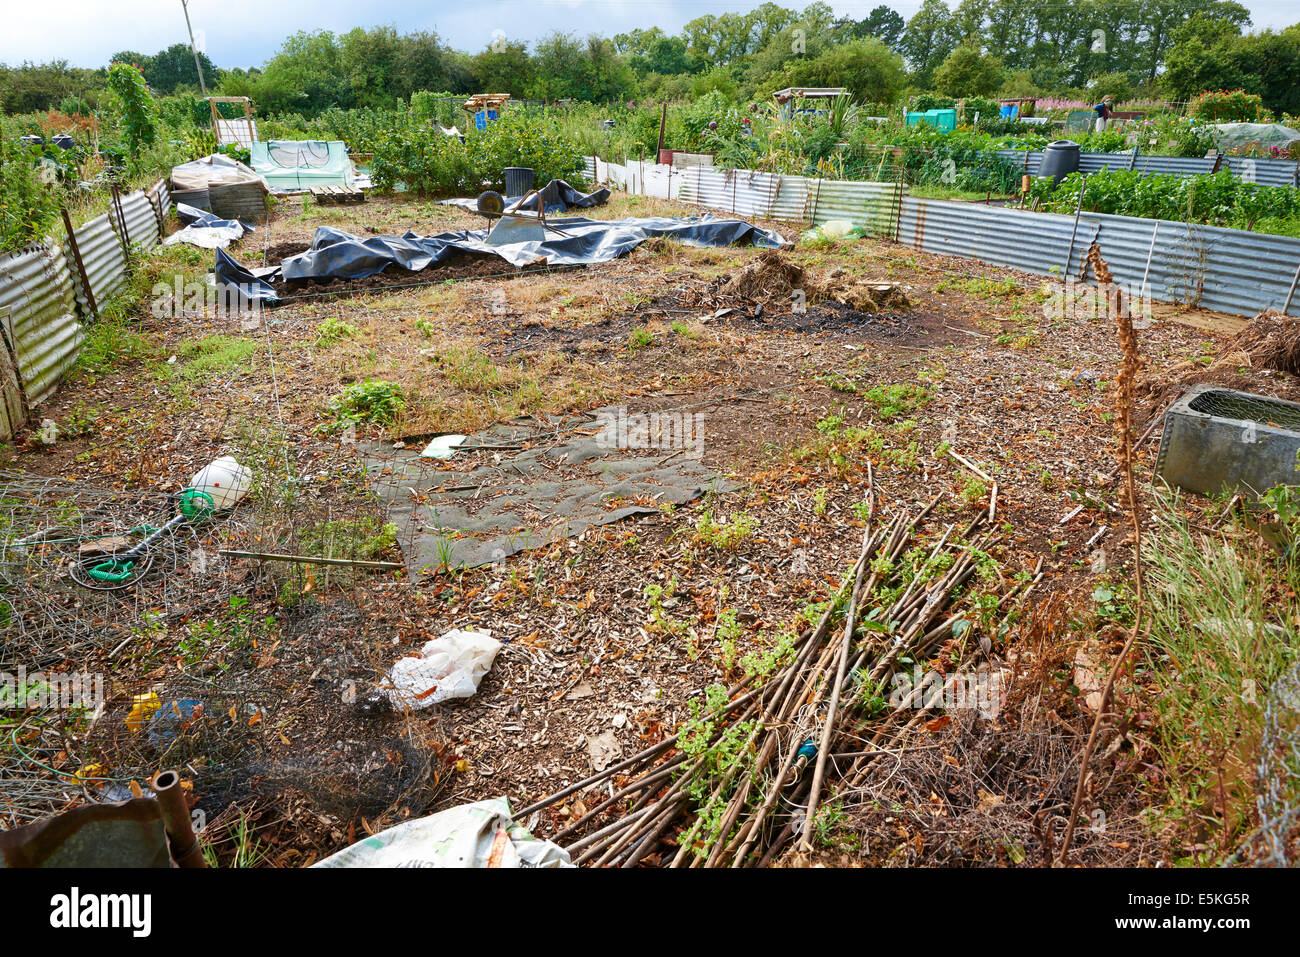 Allotment Just Being Cleared And Started By A New Owner - Stock Image